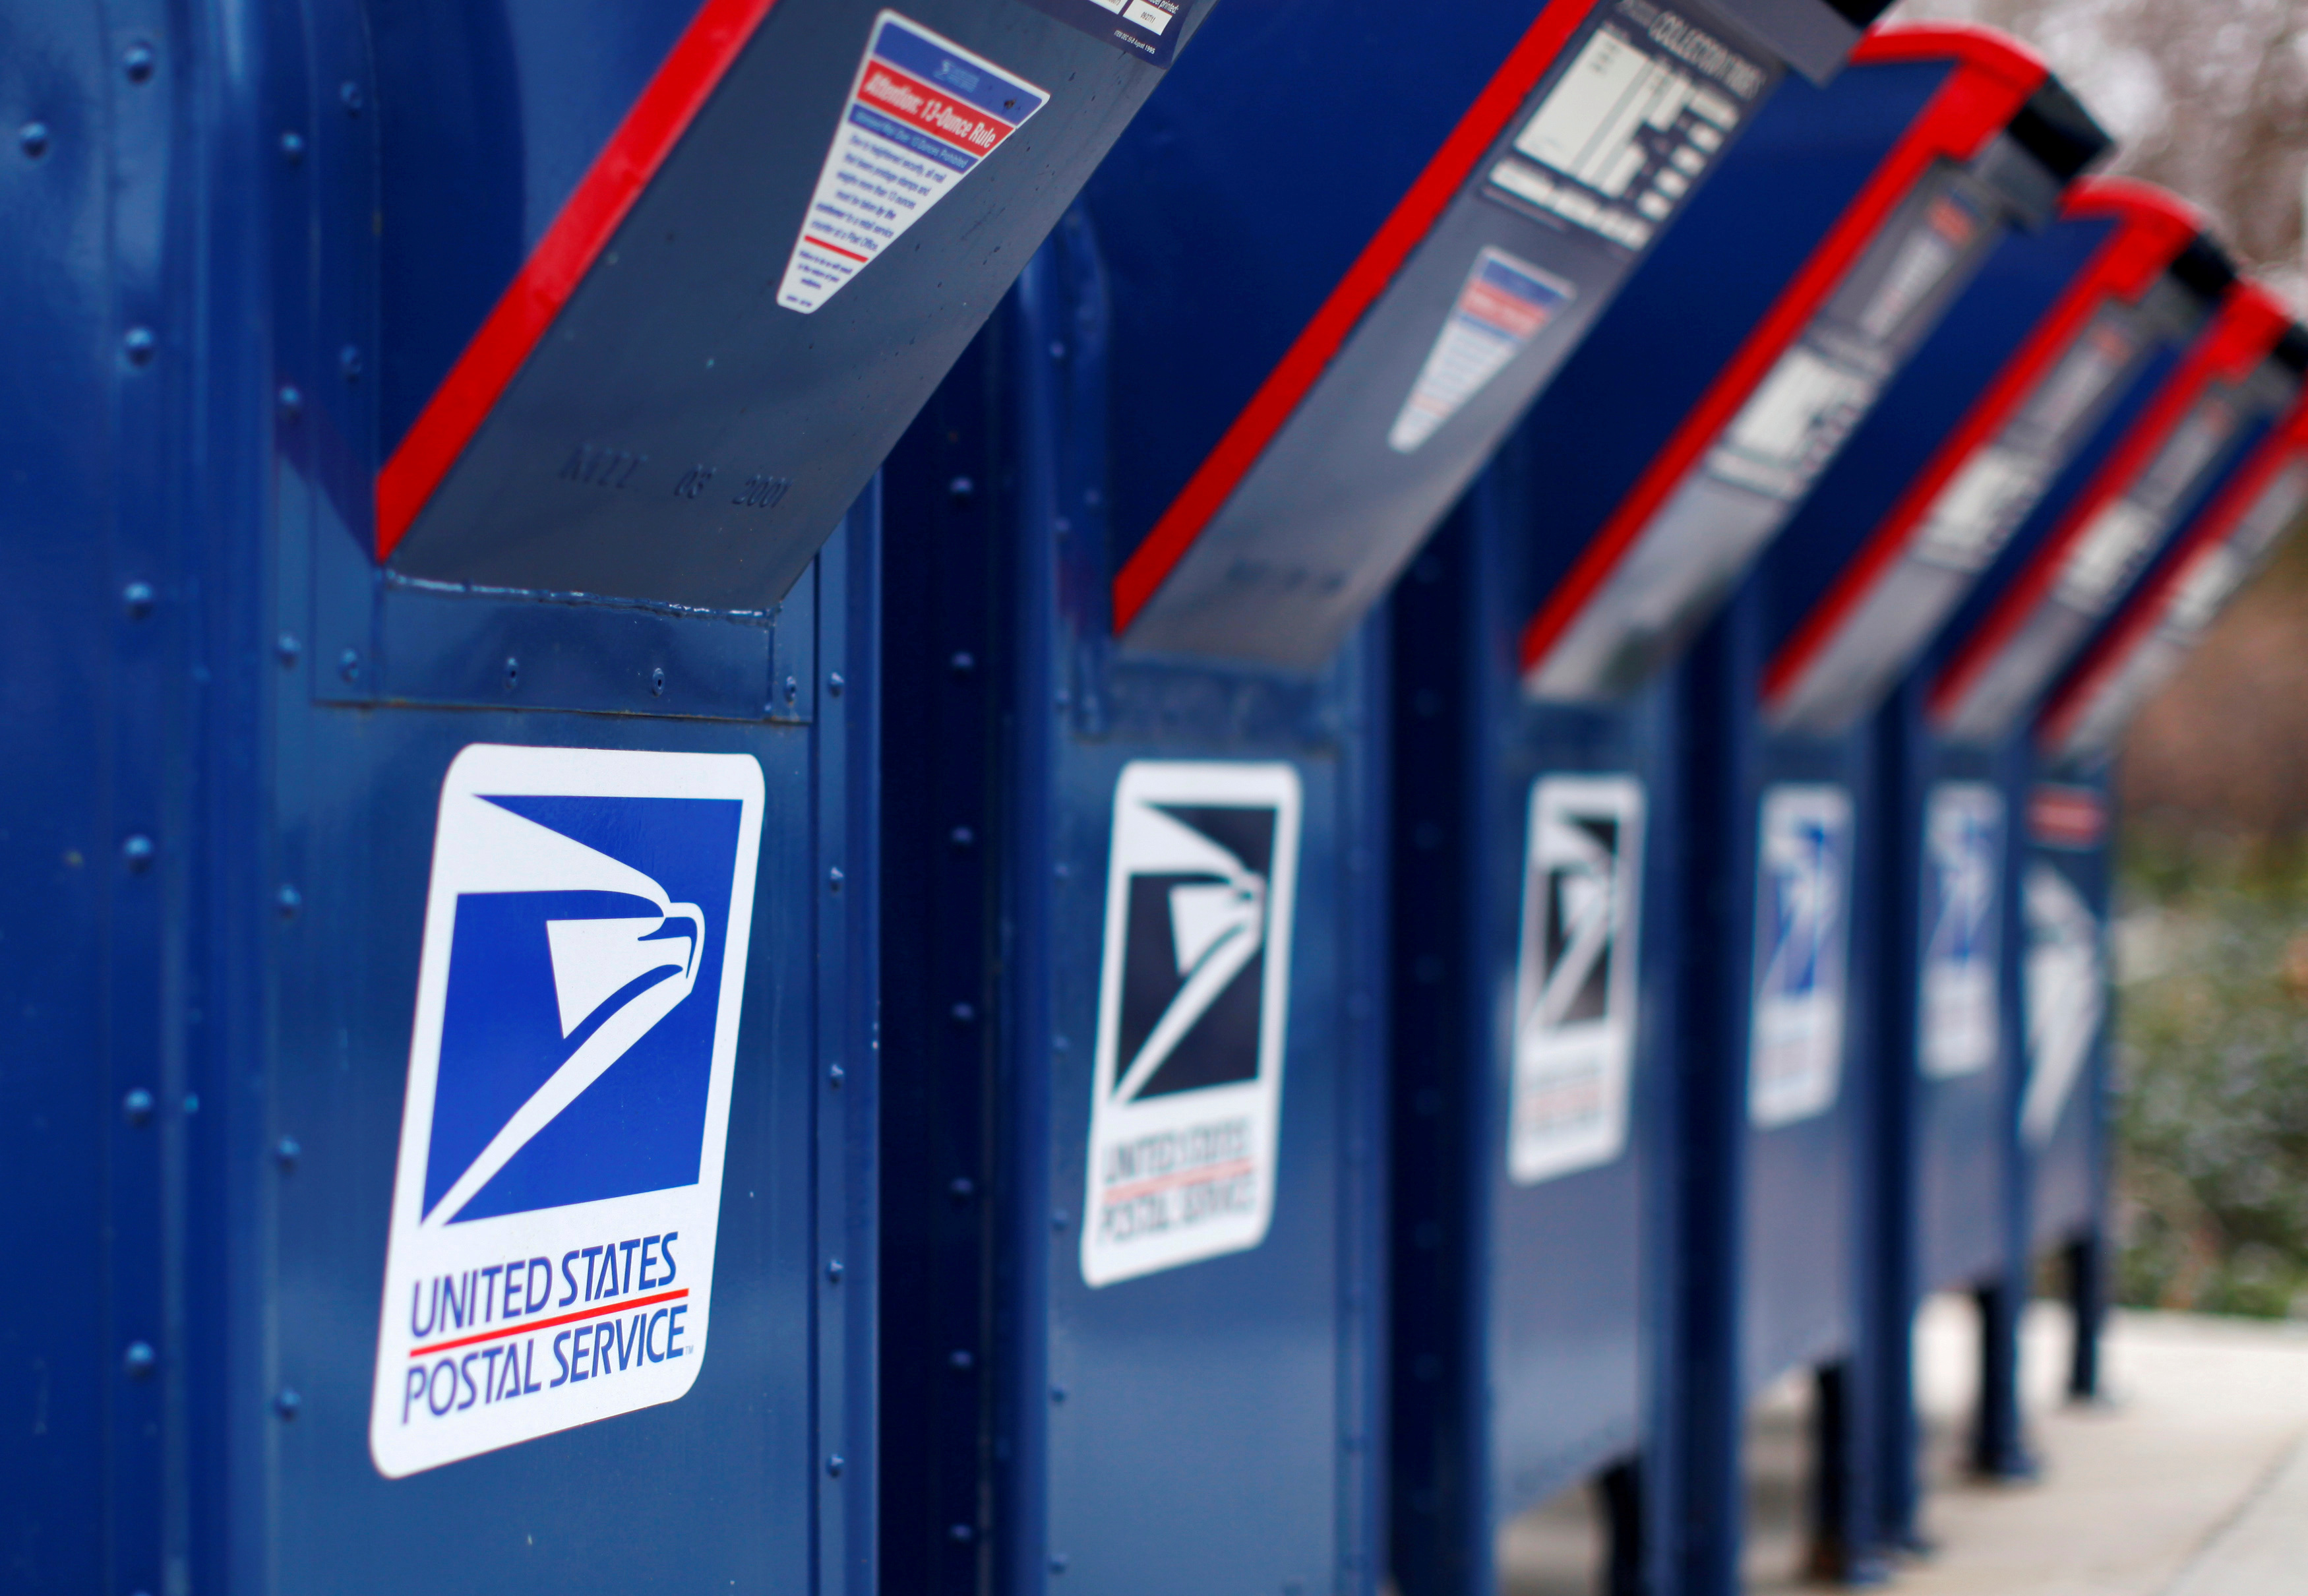 FILE PHOTO: A view shows U.S. postal service mail boxes at a post office in Encinitas, California February 6, 2013. REUTERS/Mike Blake/File Photo